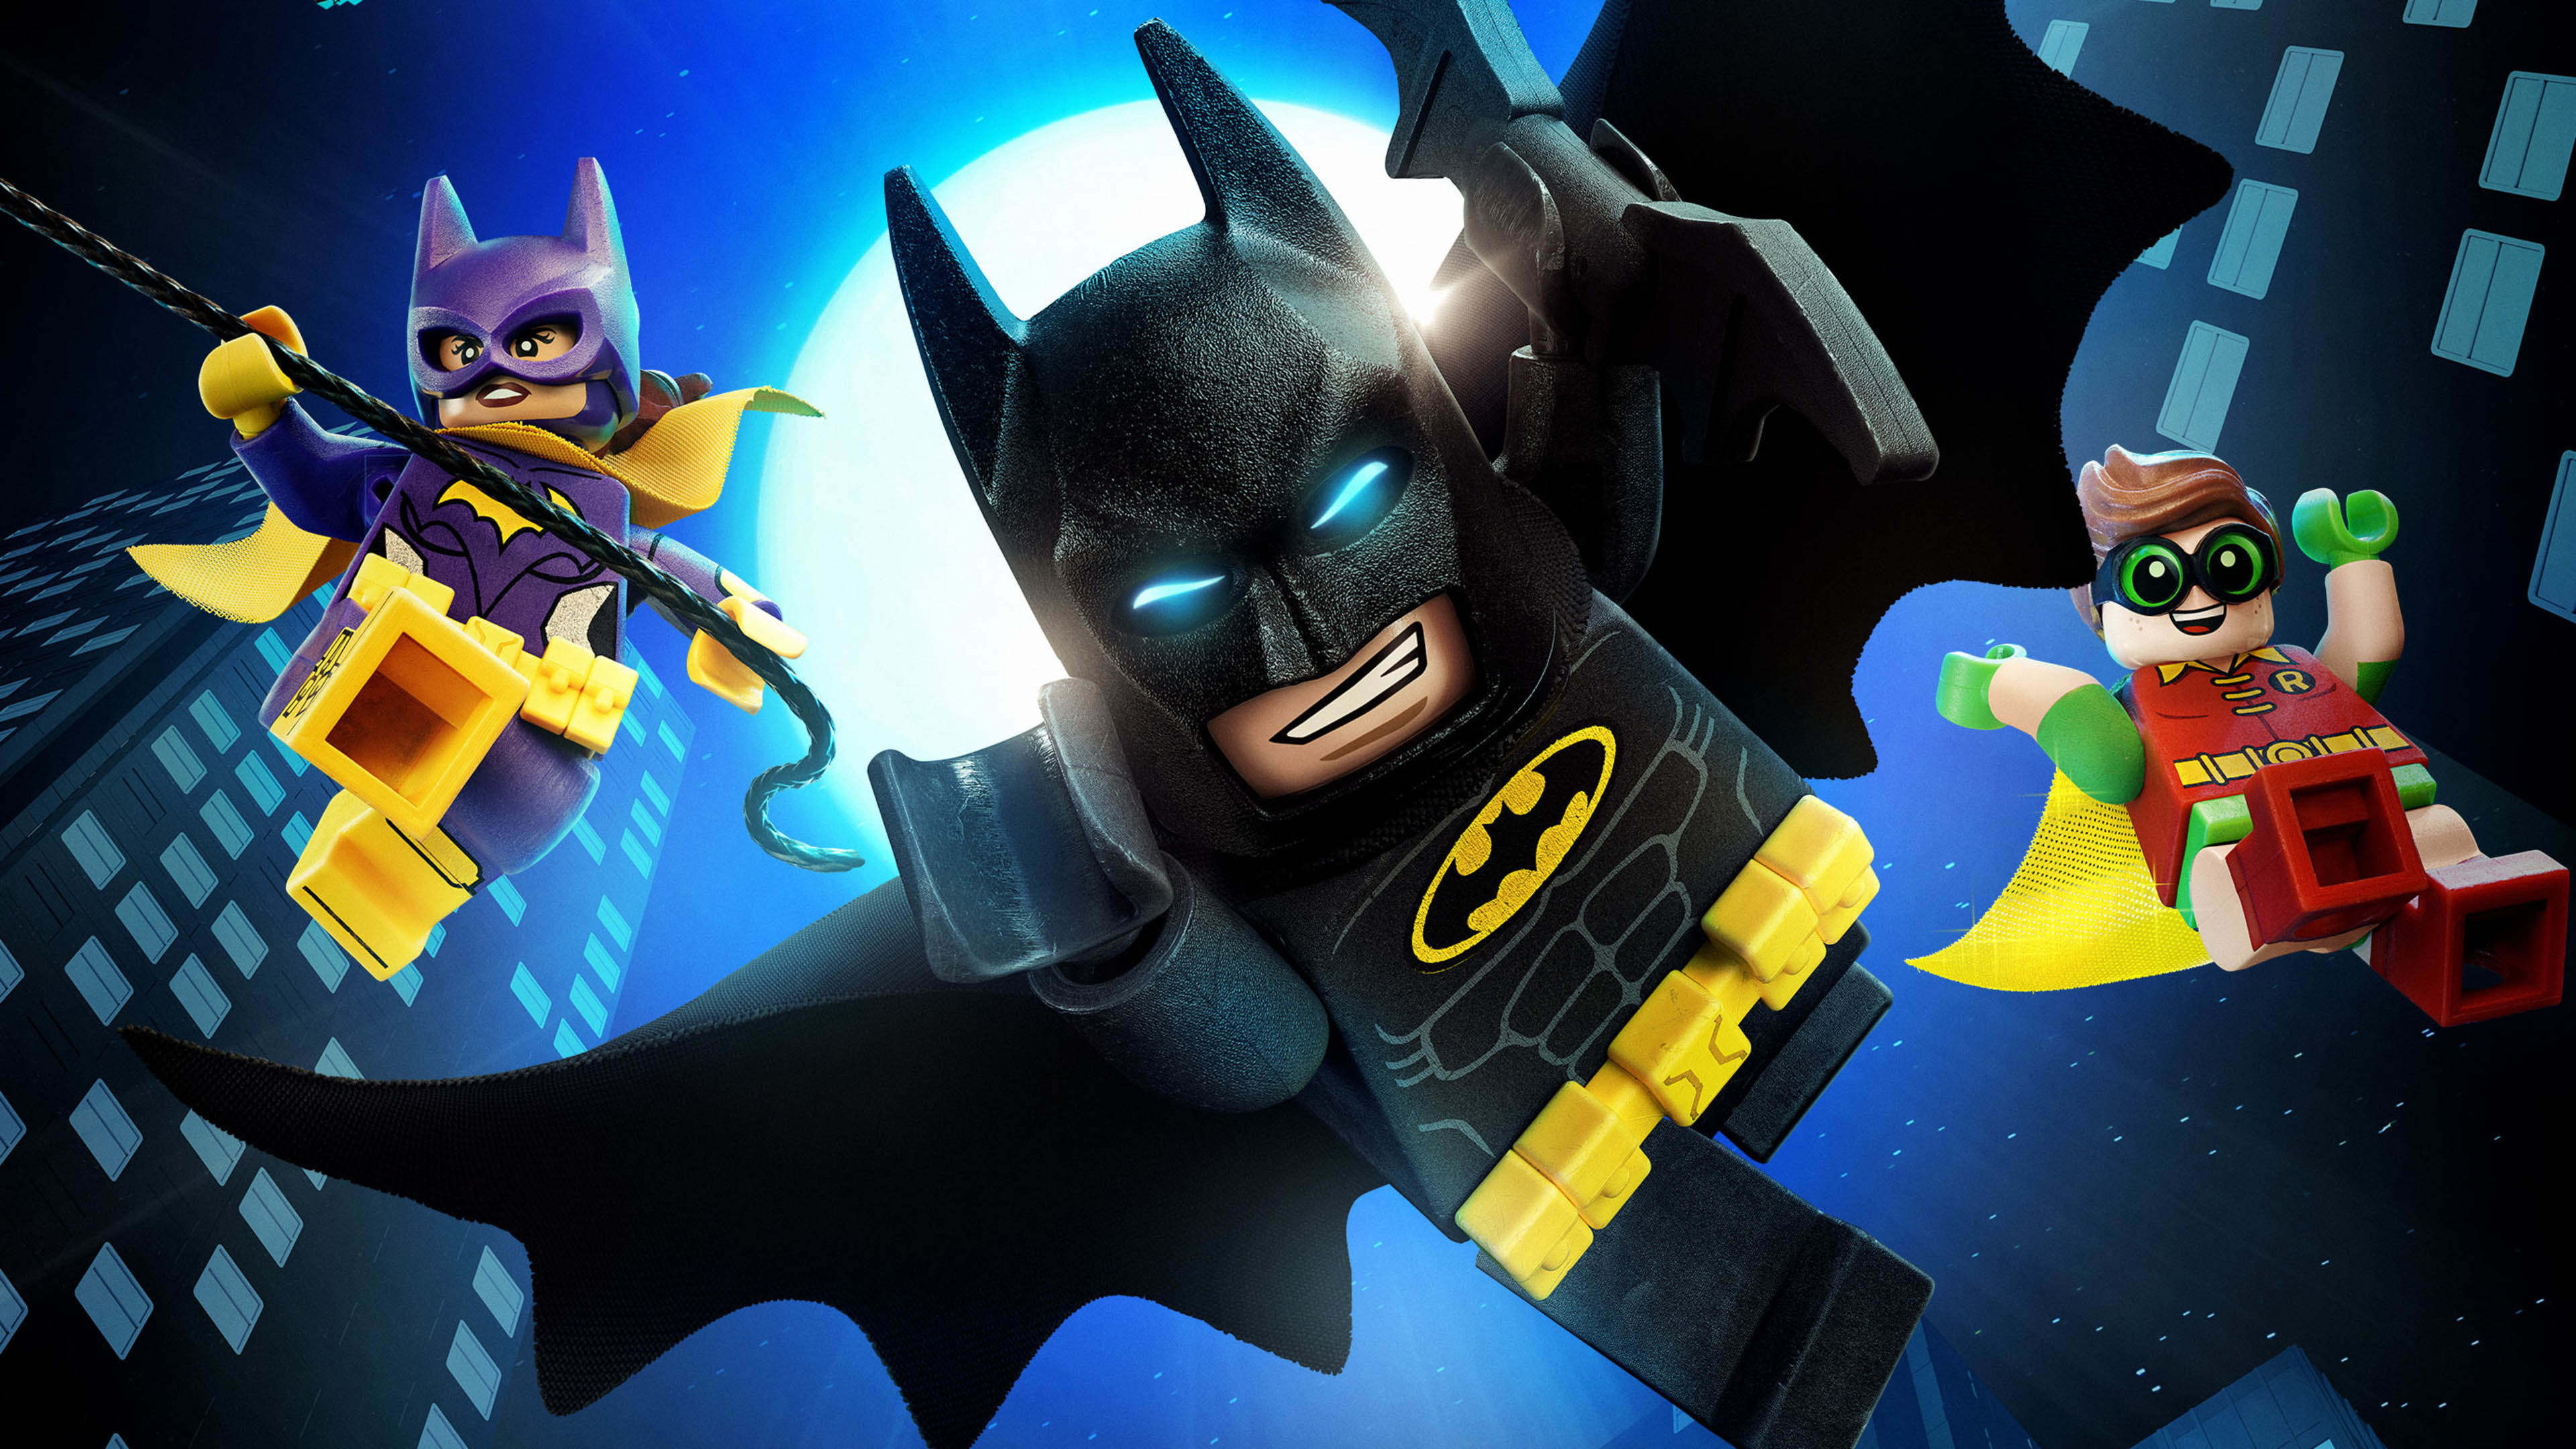 3840x2160 Batman, Batgirl & Robin - The Lego Batman Movie  wallpaper